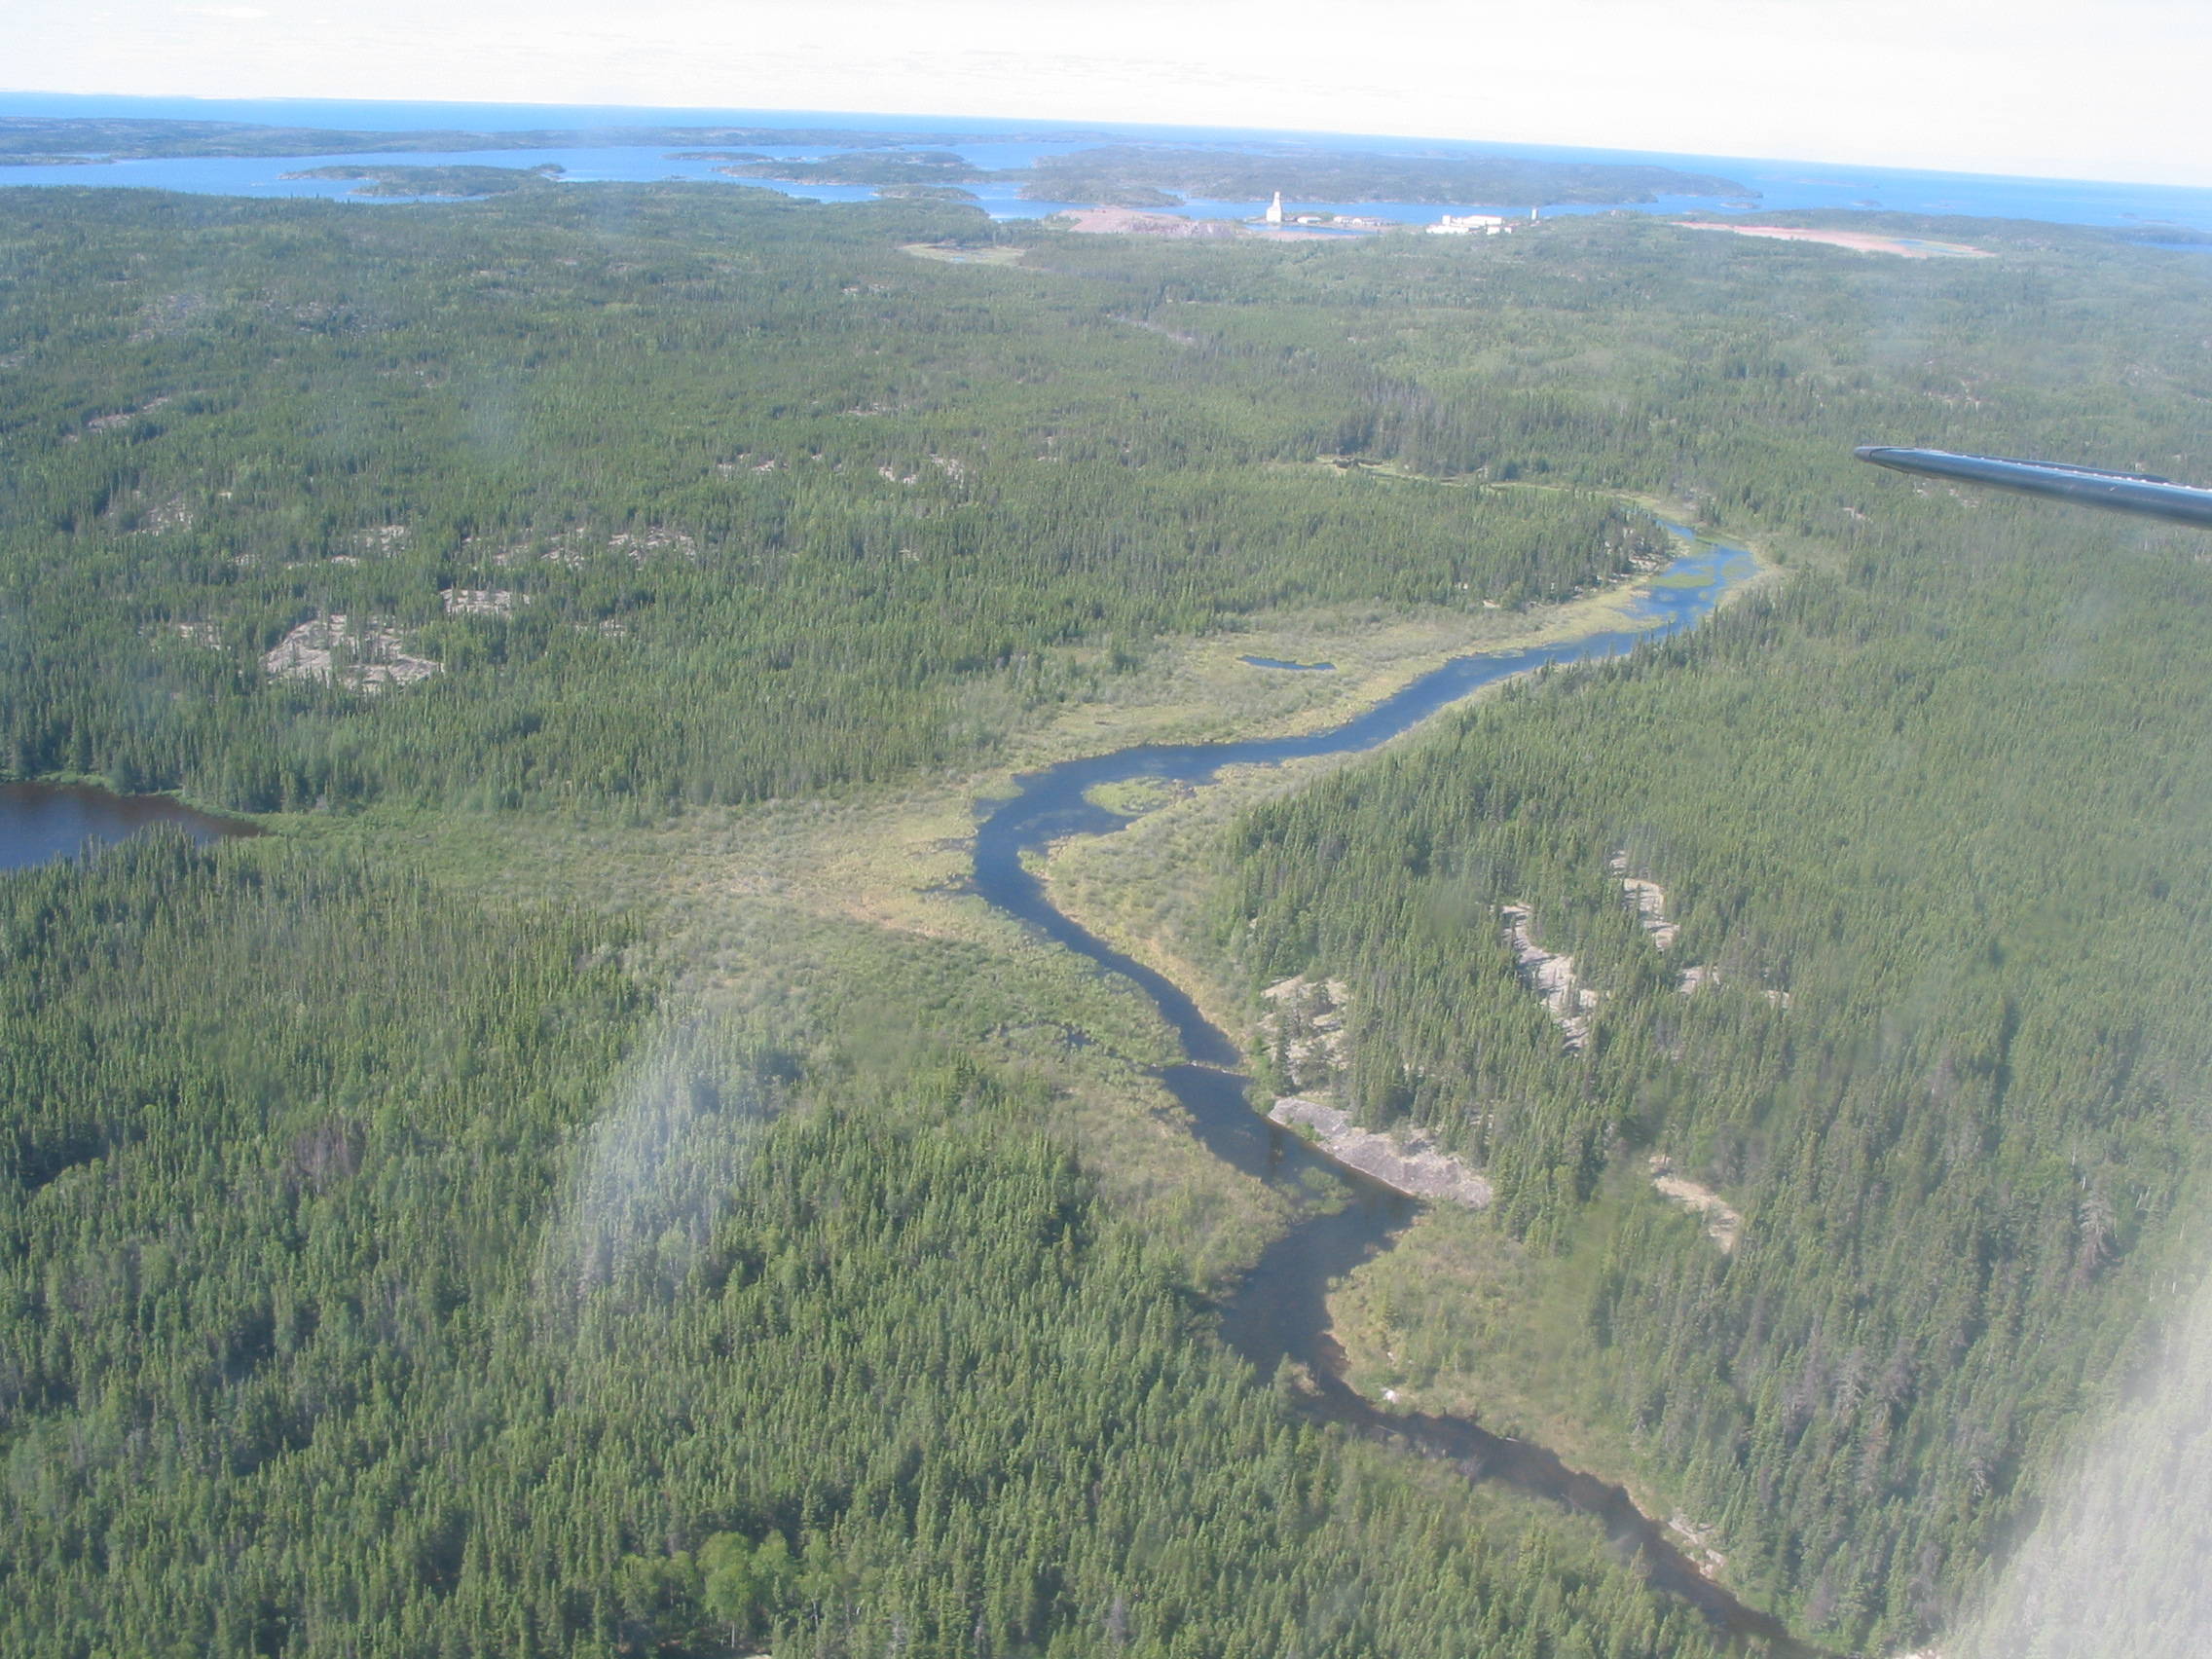 Aerial view of Gunnar site